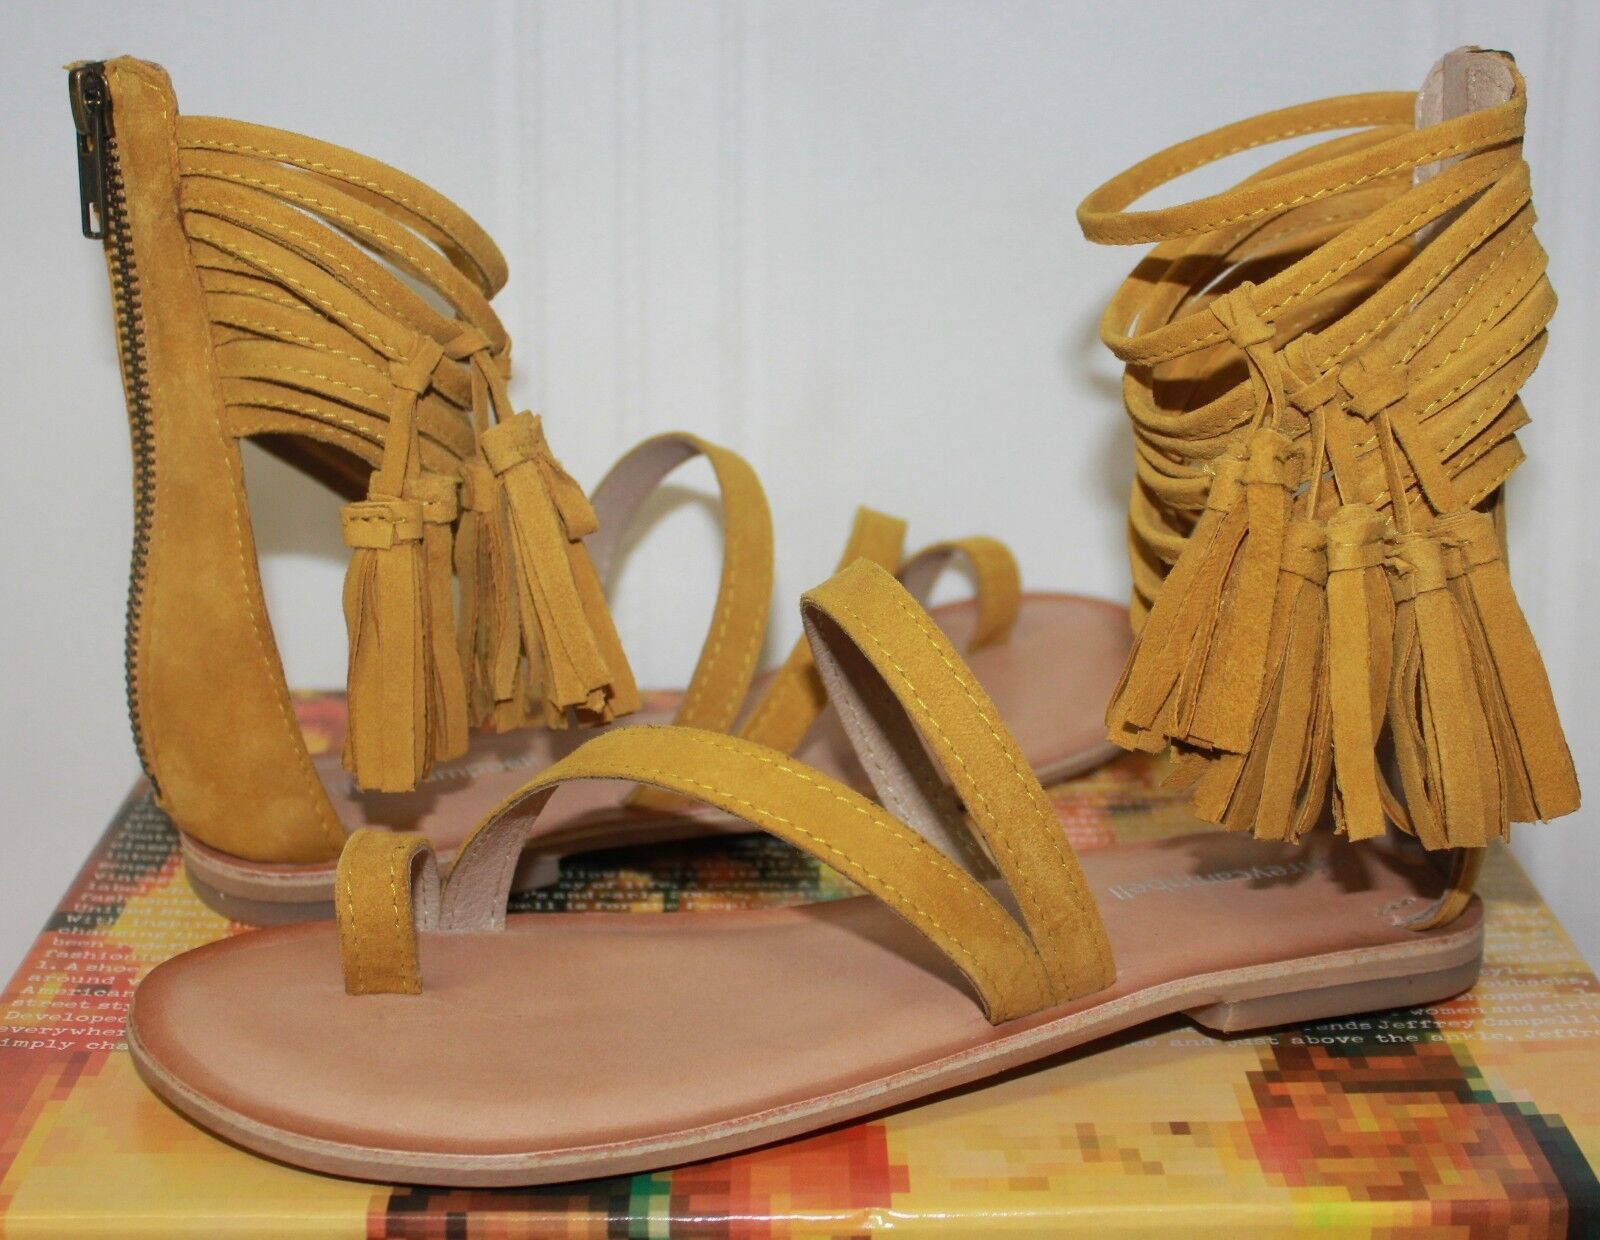 Jeffrey Campbell Glady mustard yellow suede Sandale New With Box